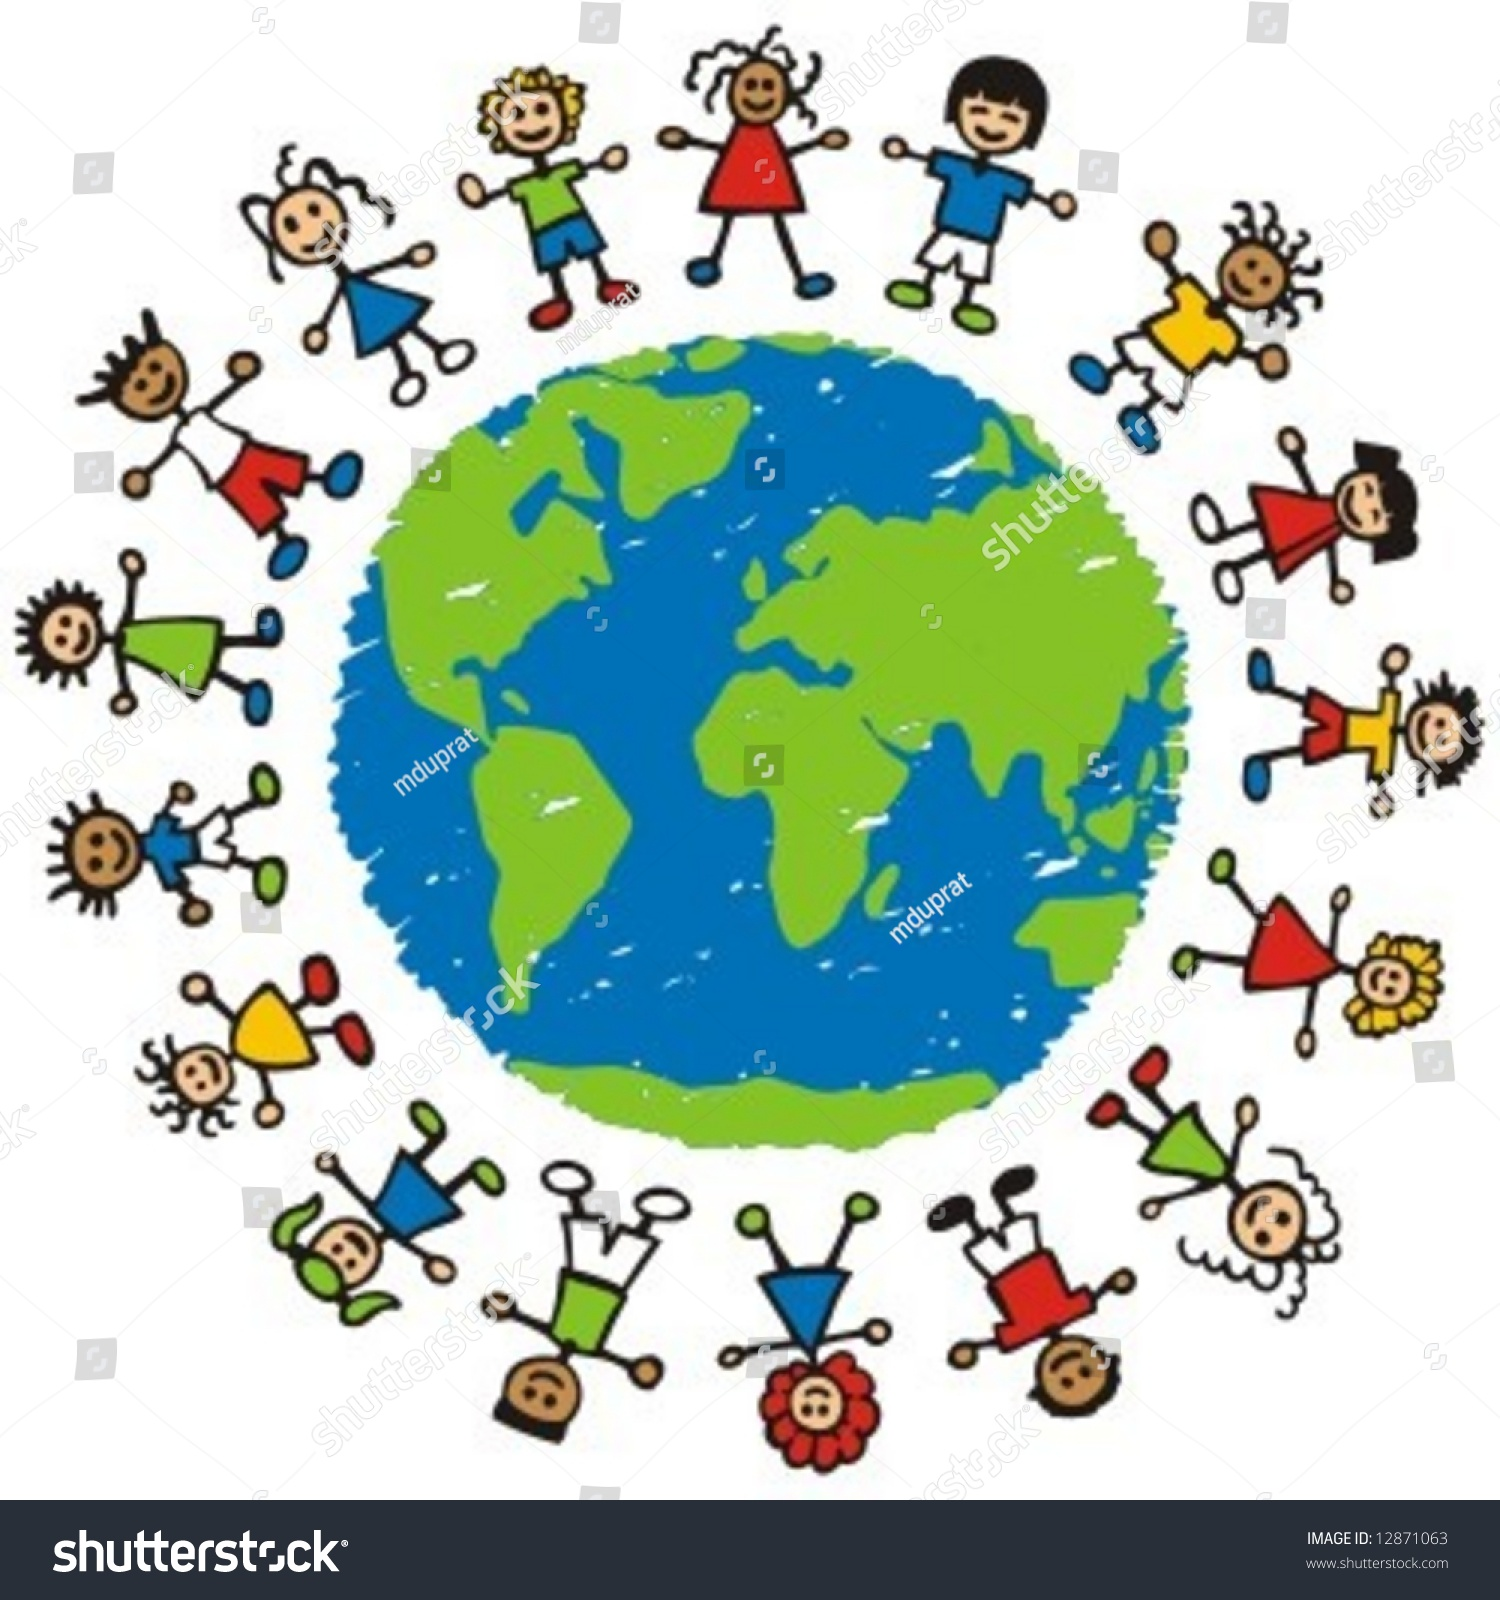 Children Of Different Races Hugging The Planet Earth. Stock Vector